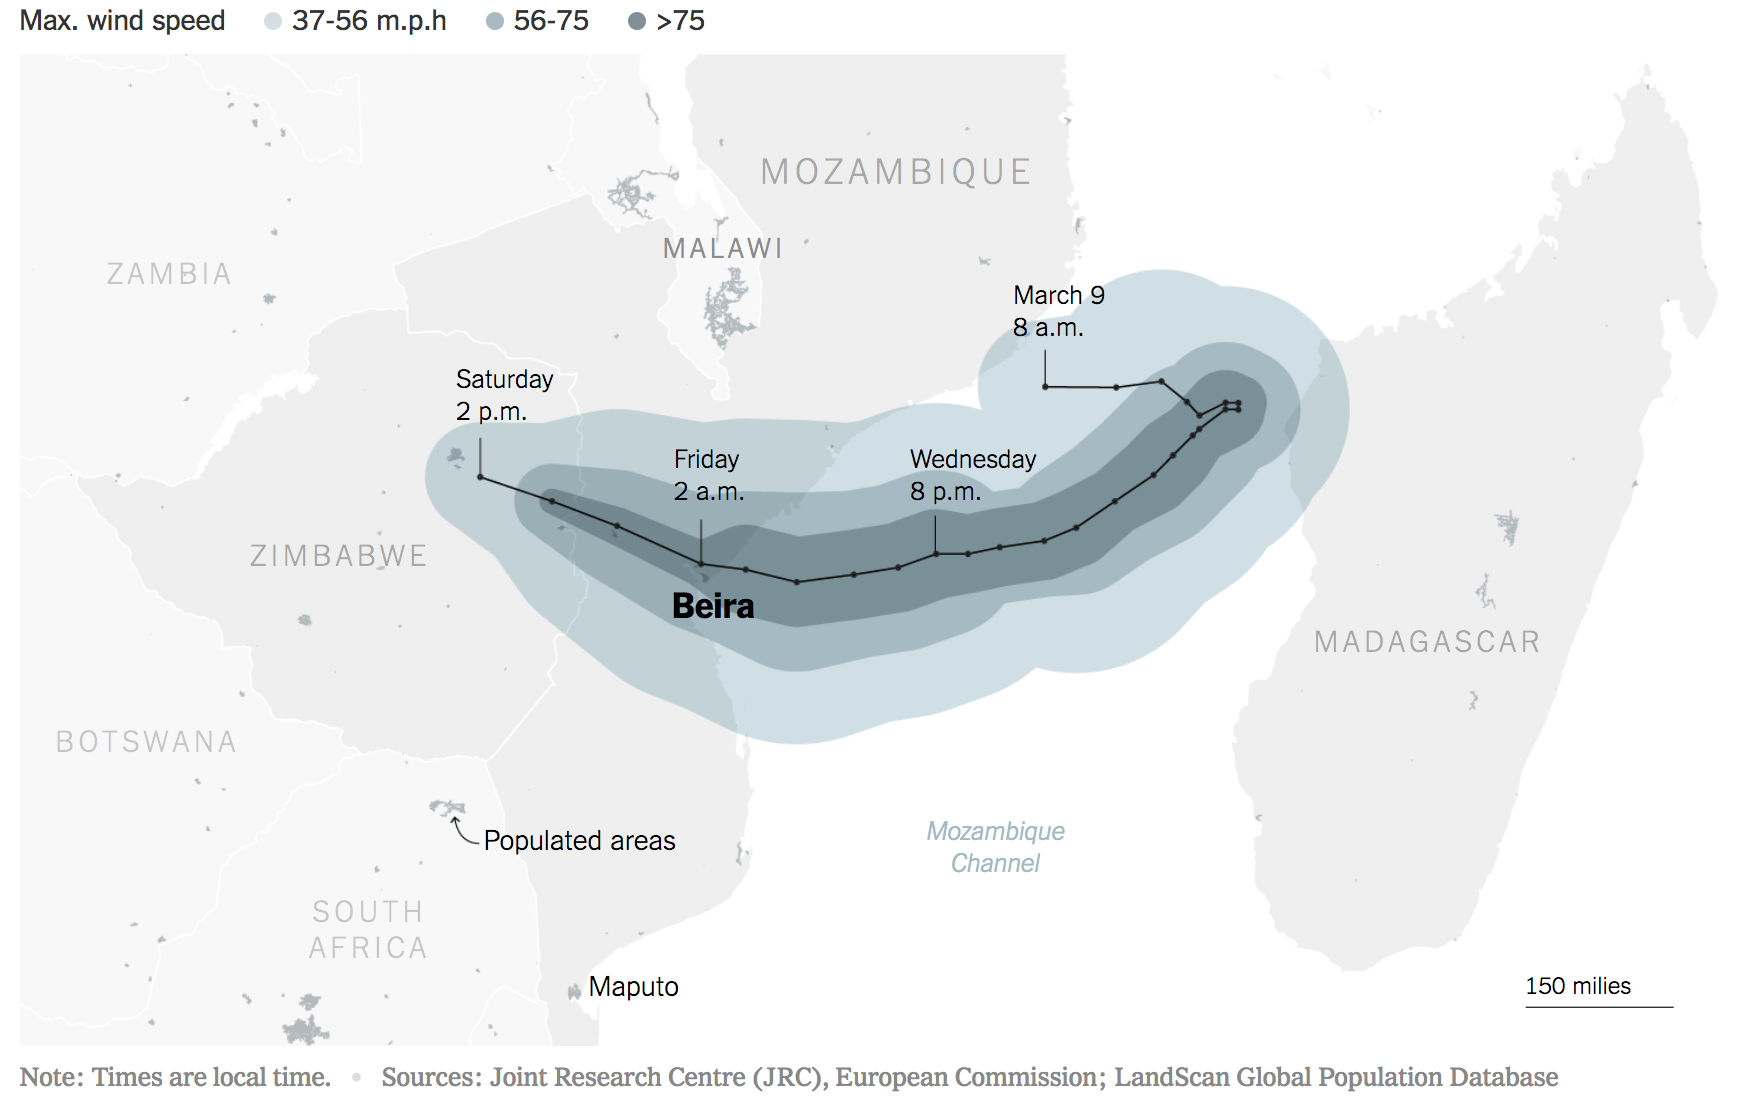 Cyclone Idai, Mozambique Channel